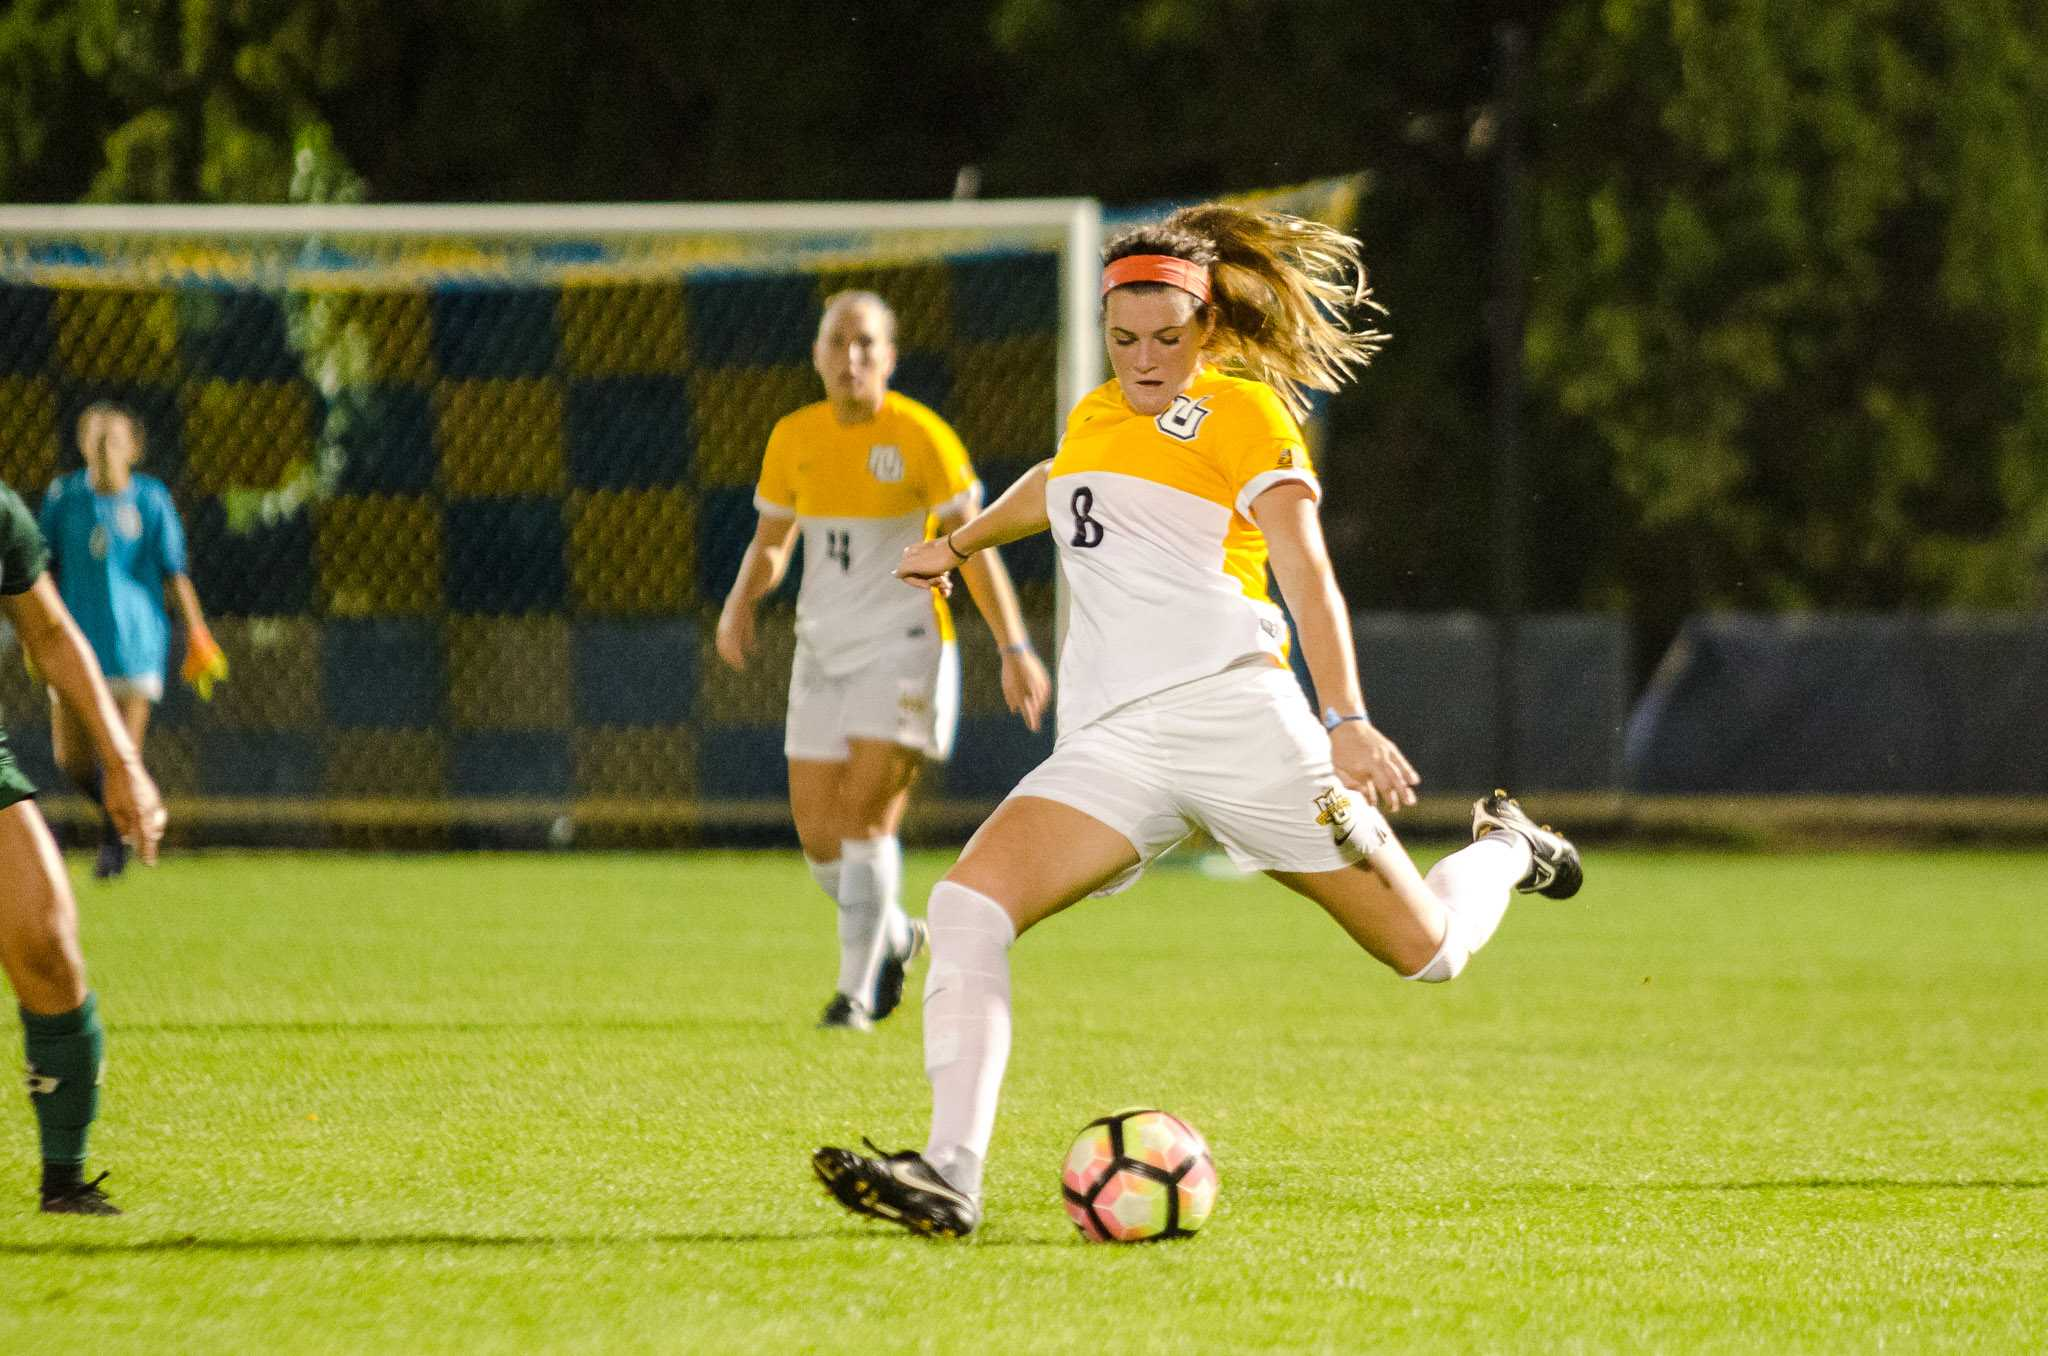 Meegan Johnston scored two goals against CSUN last weekend.